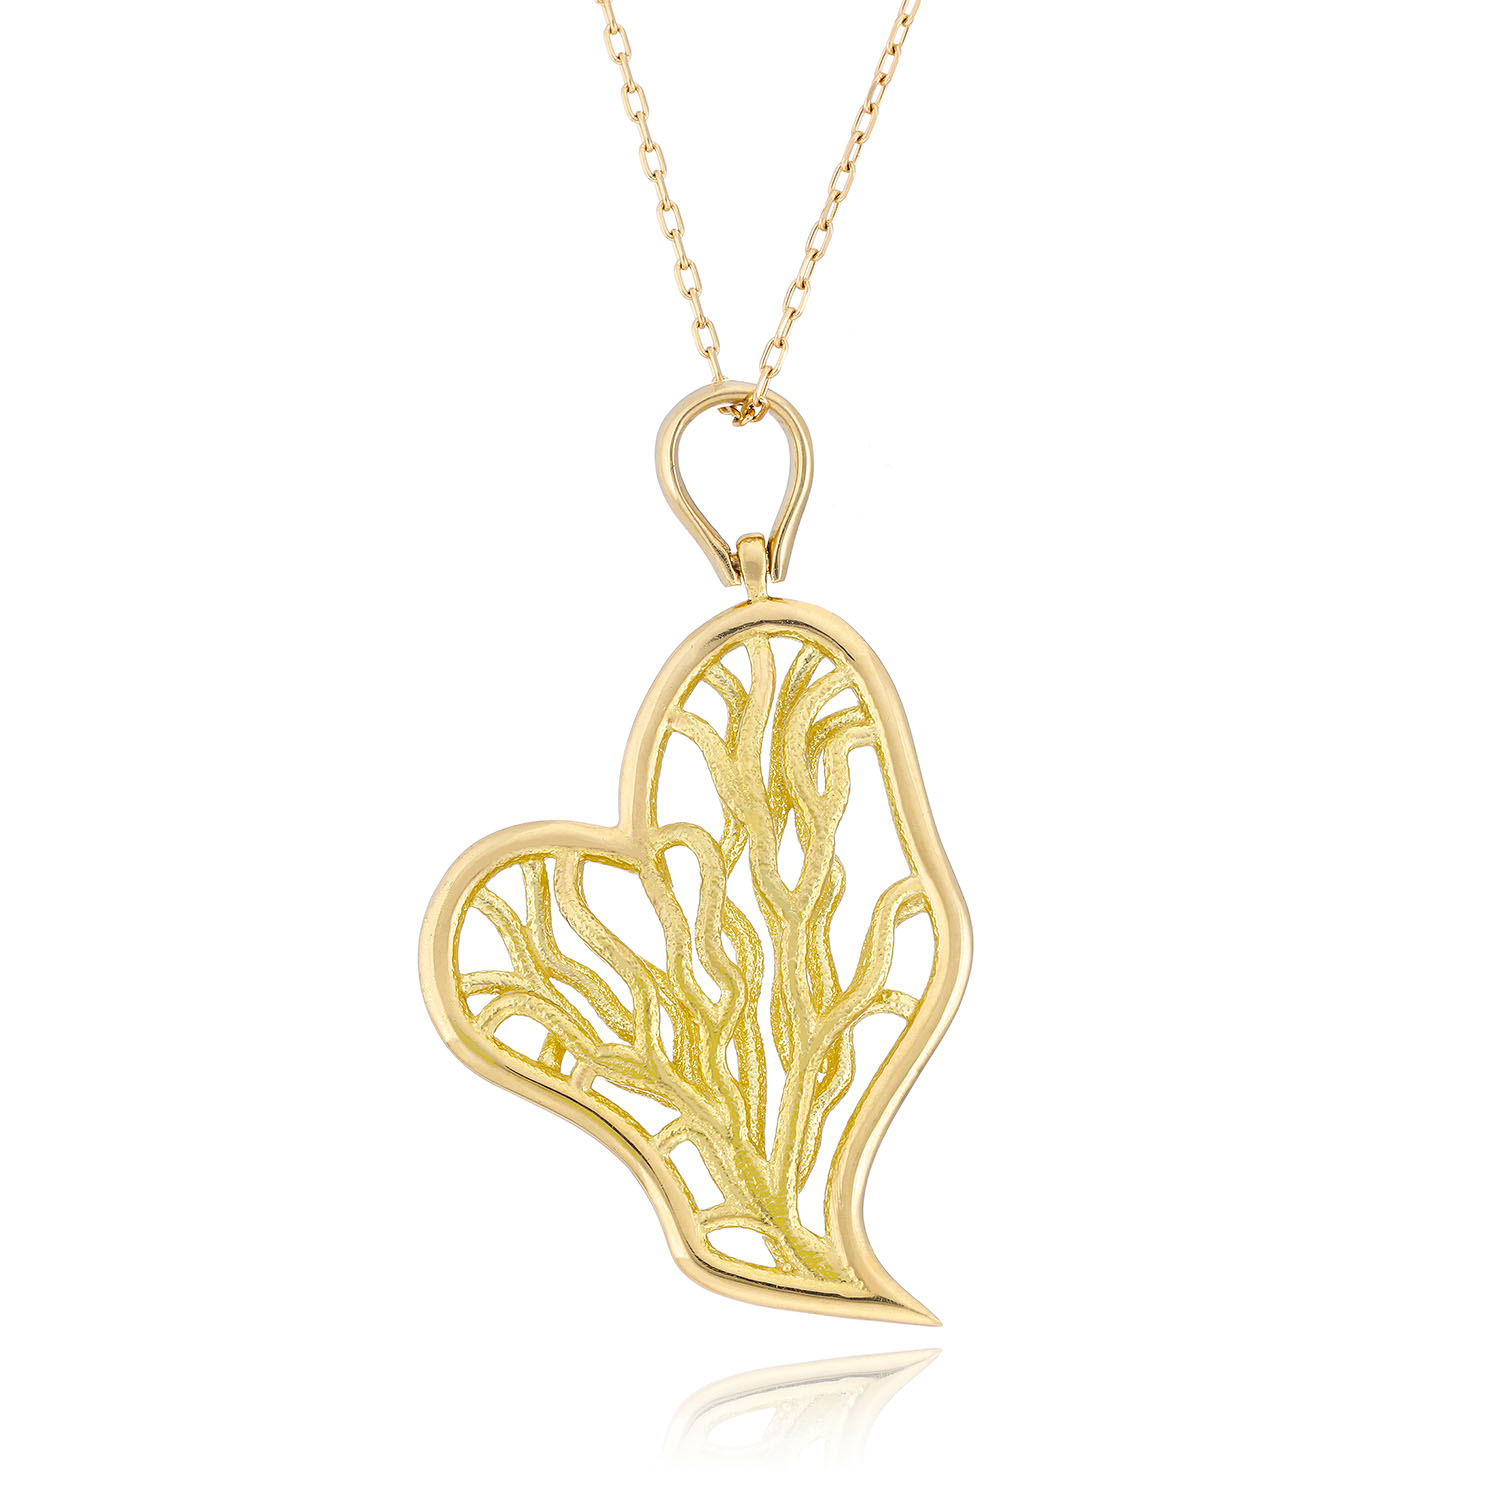 VITAE ASCENDERE MELTING HEART CHARM NECKLACE, $580 at Atelier d'Emotion